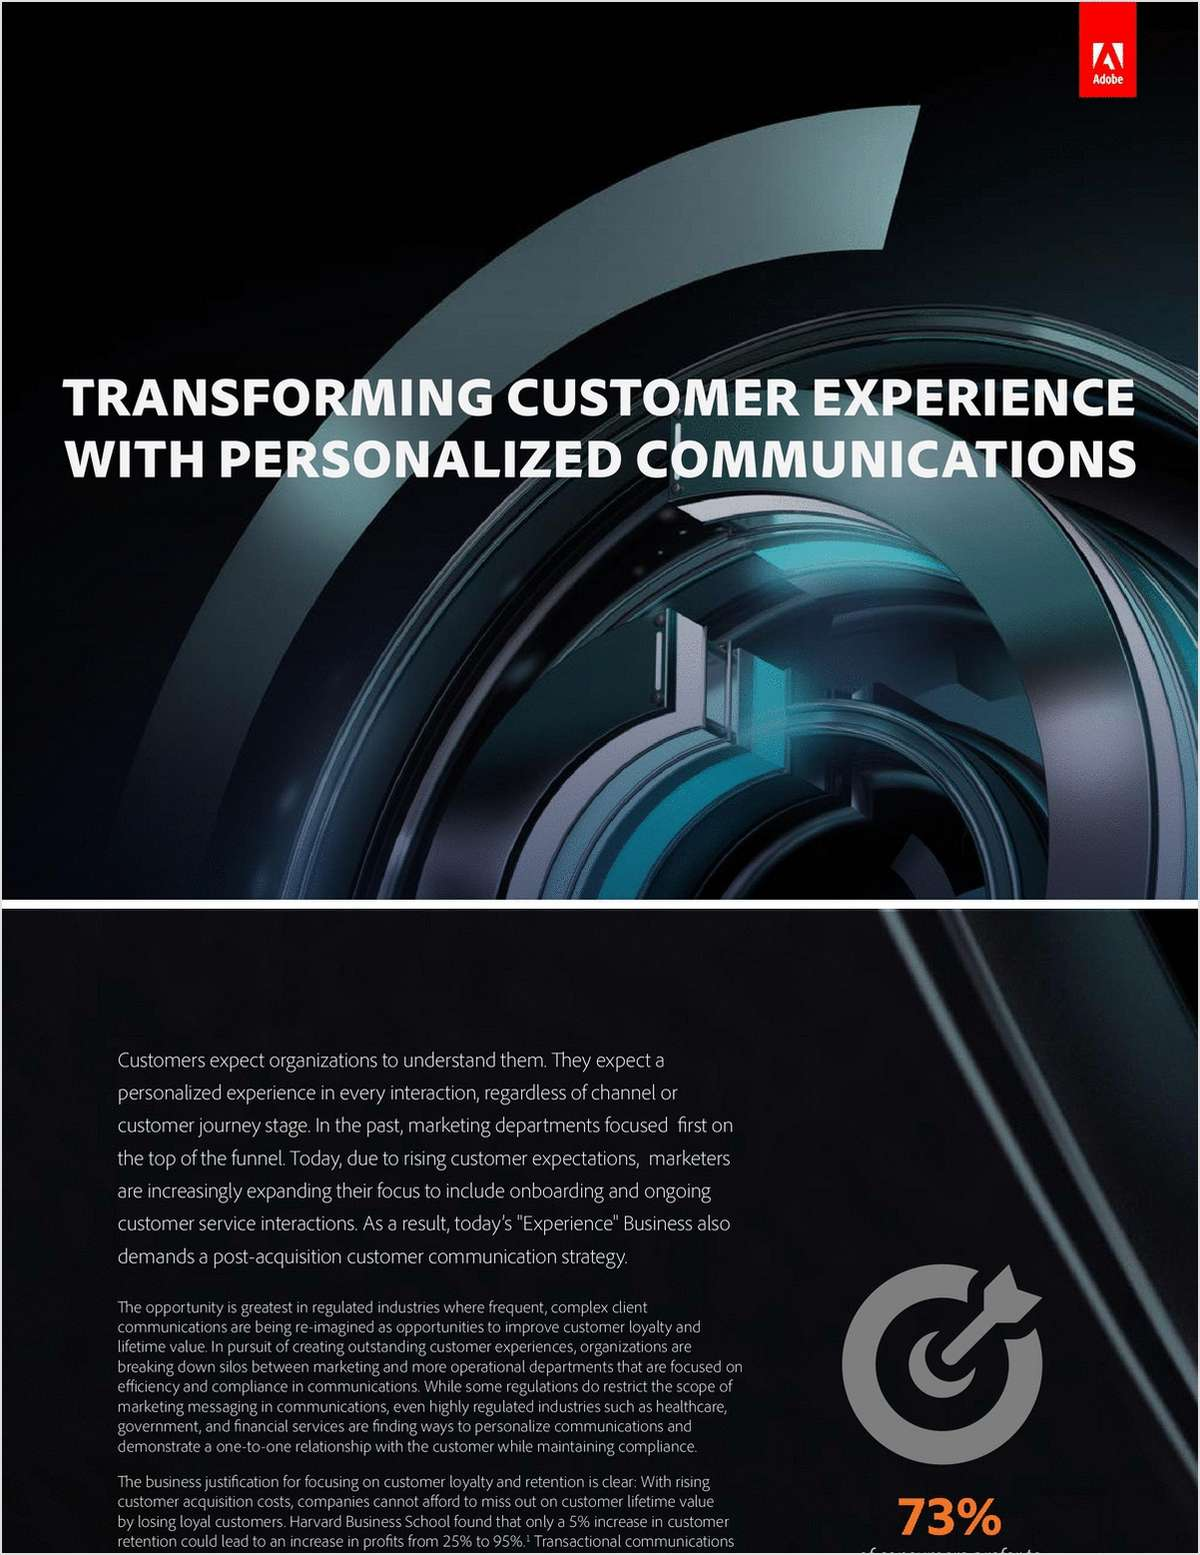 Transforming Customer Experience with Personalized Communications